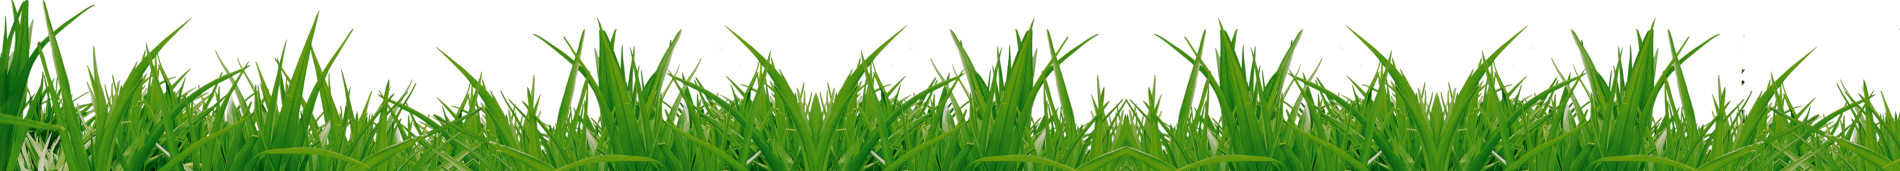 Grass png images. Pictures image green picture